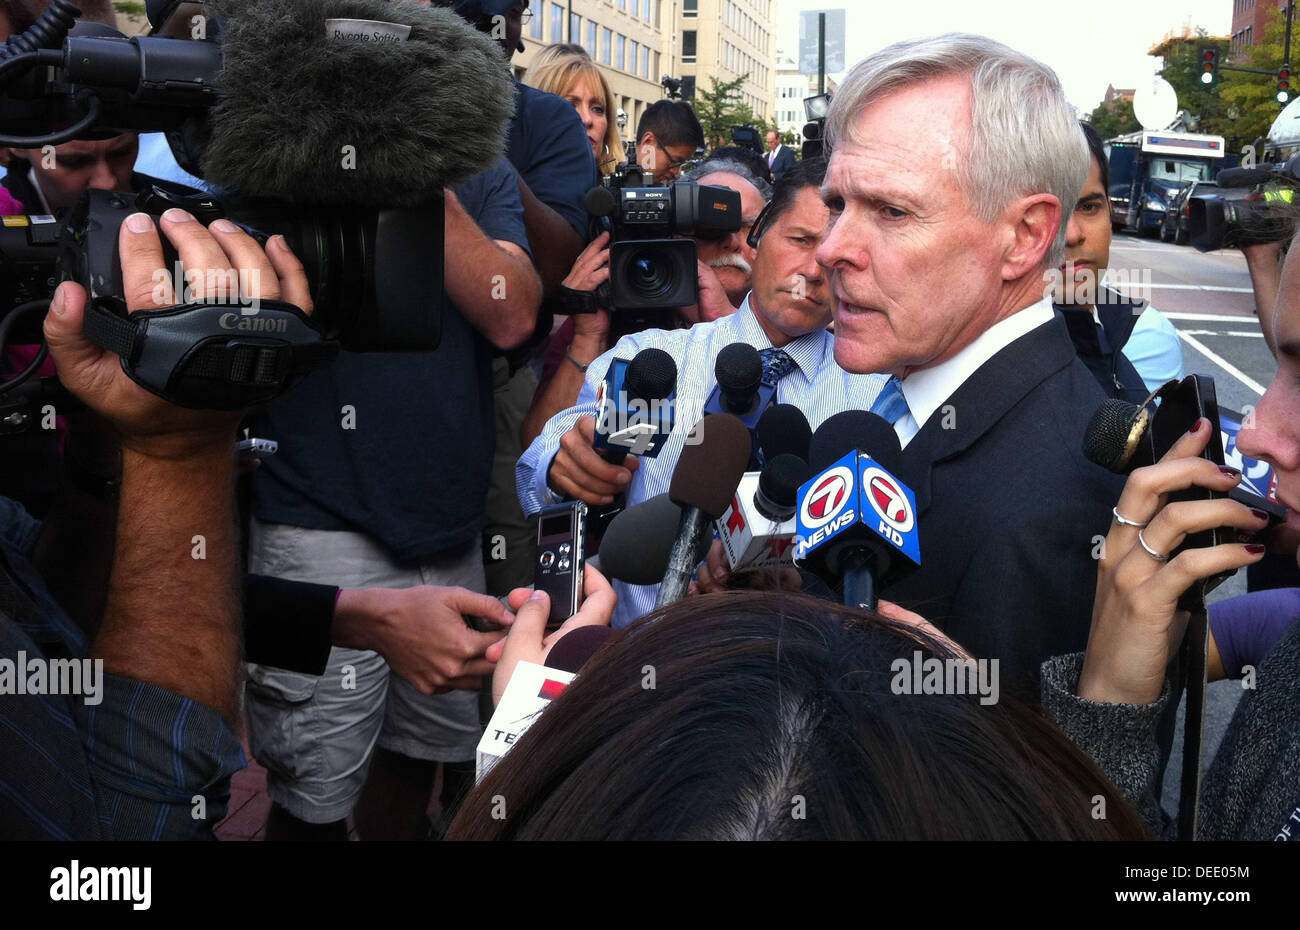 US Secretary of the Navy Ray Mabus speaks with reporters outside the Washington Navy Yard after a mass shooting Stock Photo